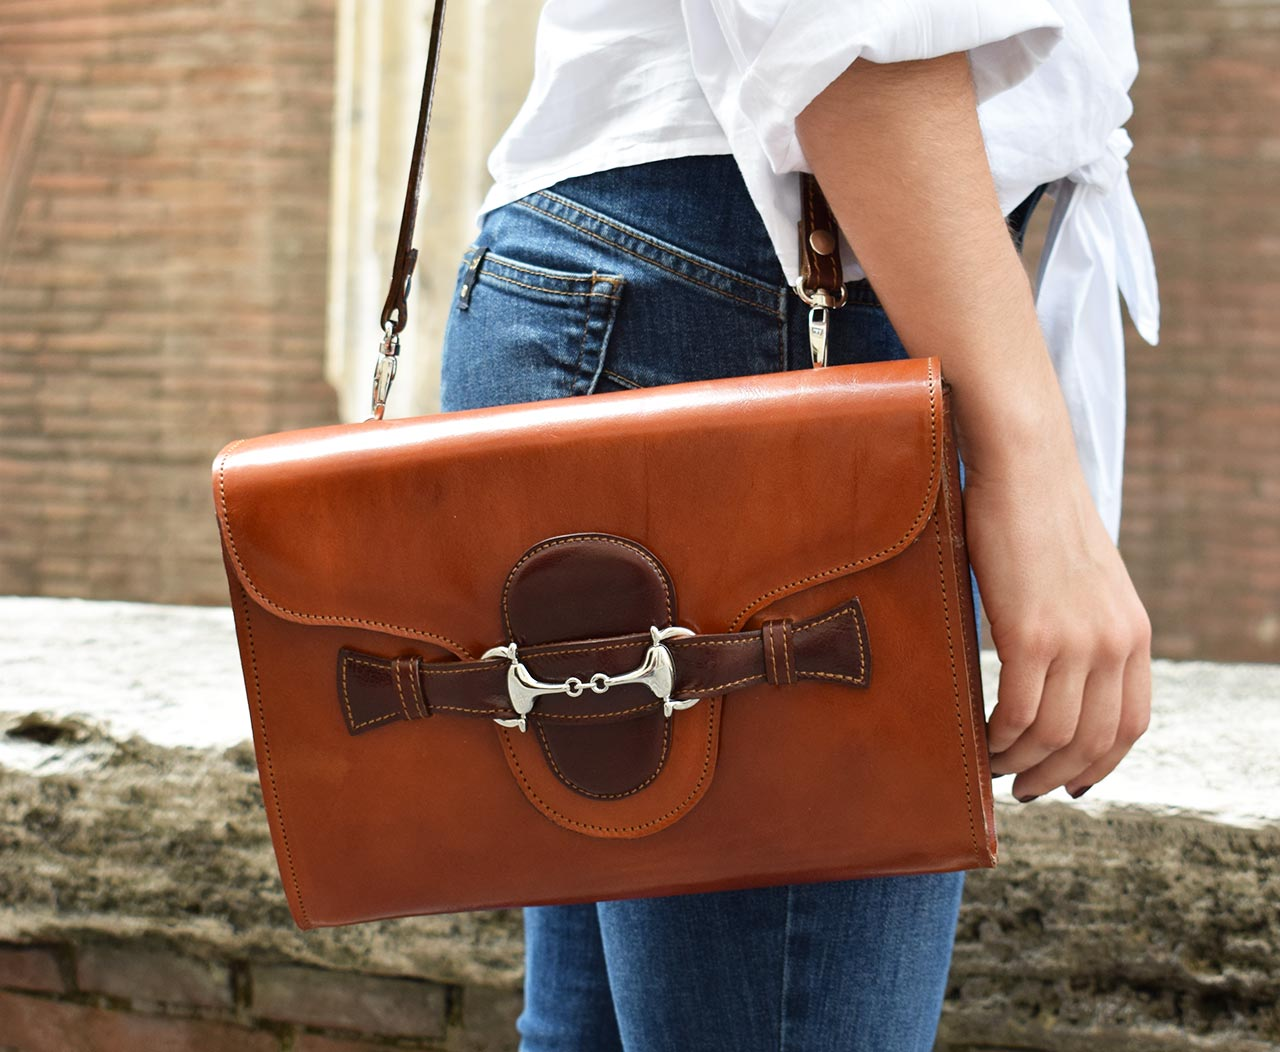 Leather Purse - Fama - Cognac Leather